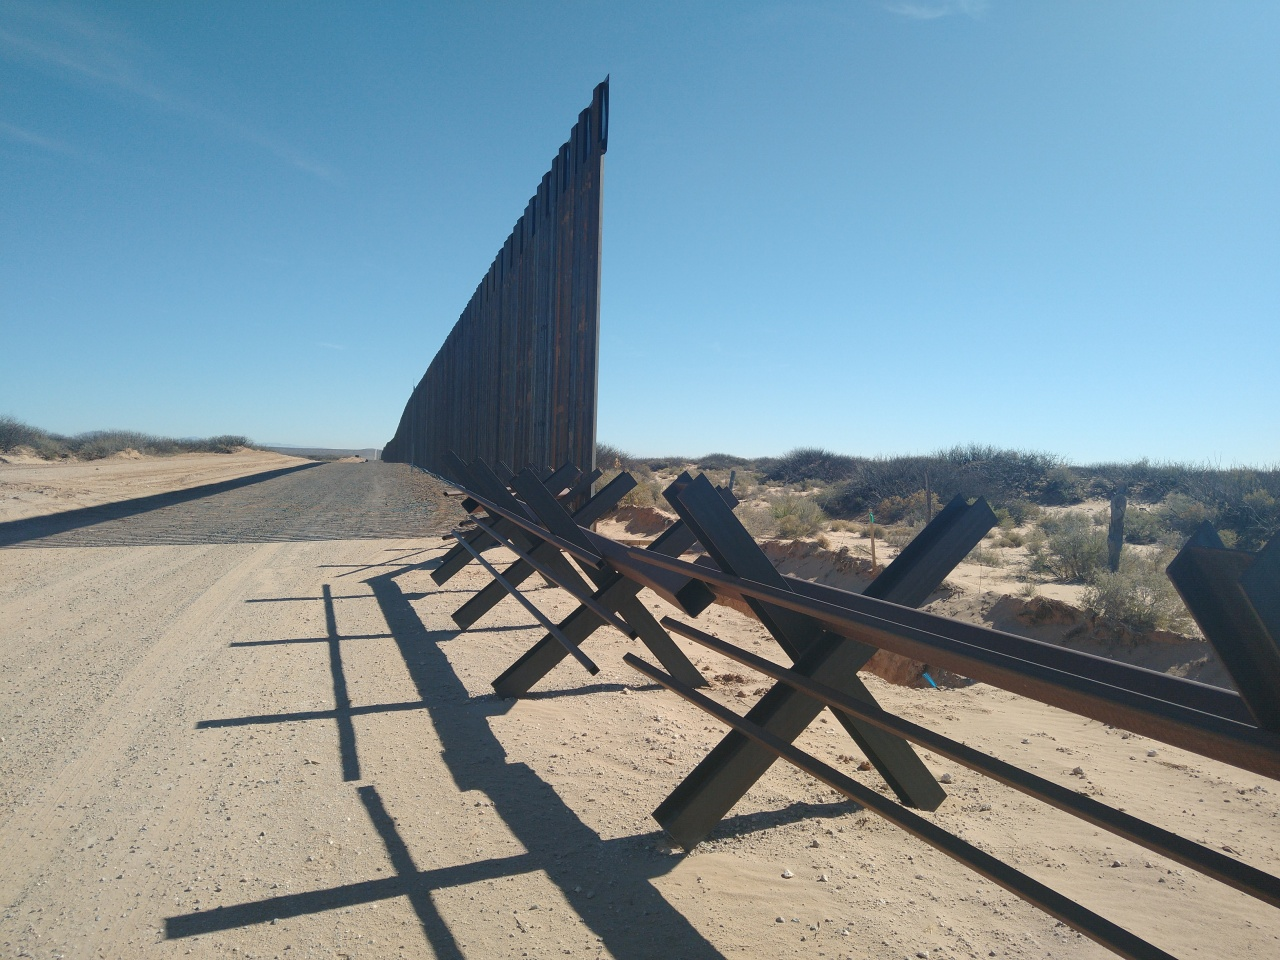 Despite opposition, border wall construction gains ground in New Mexico